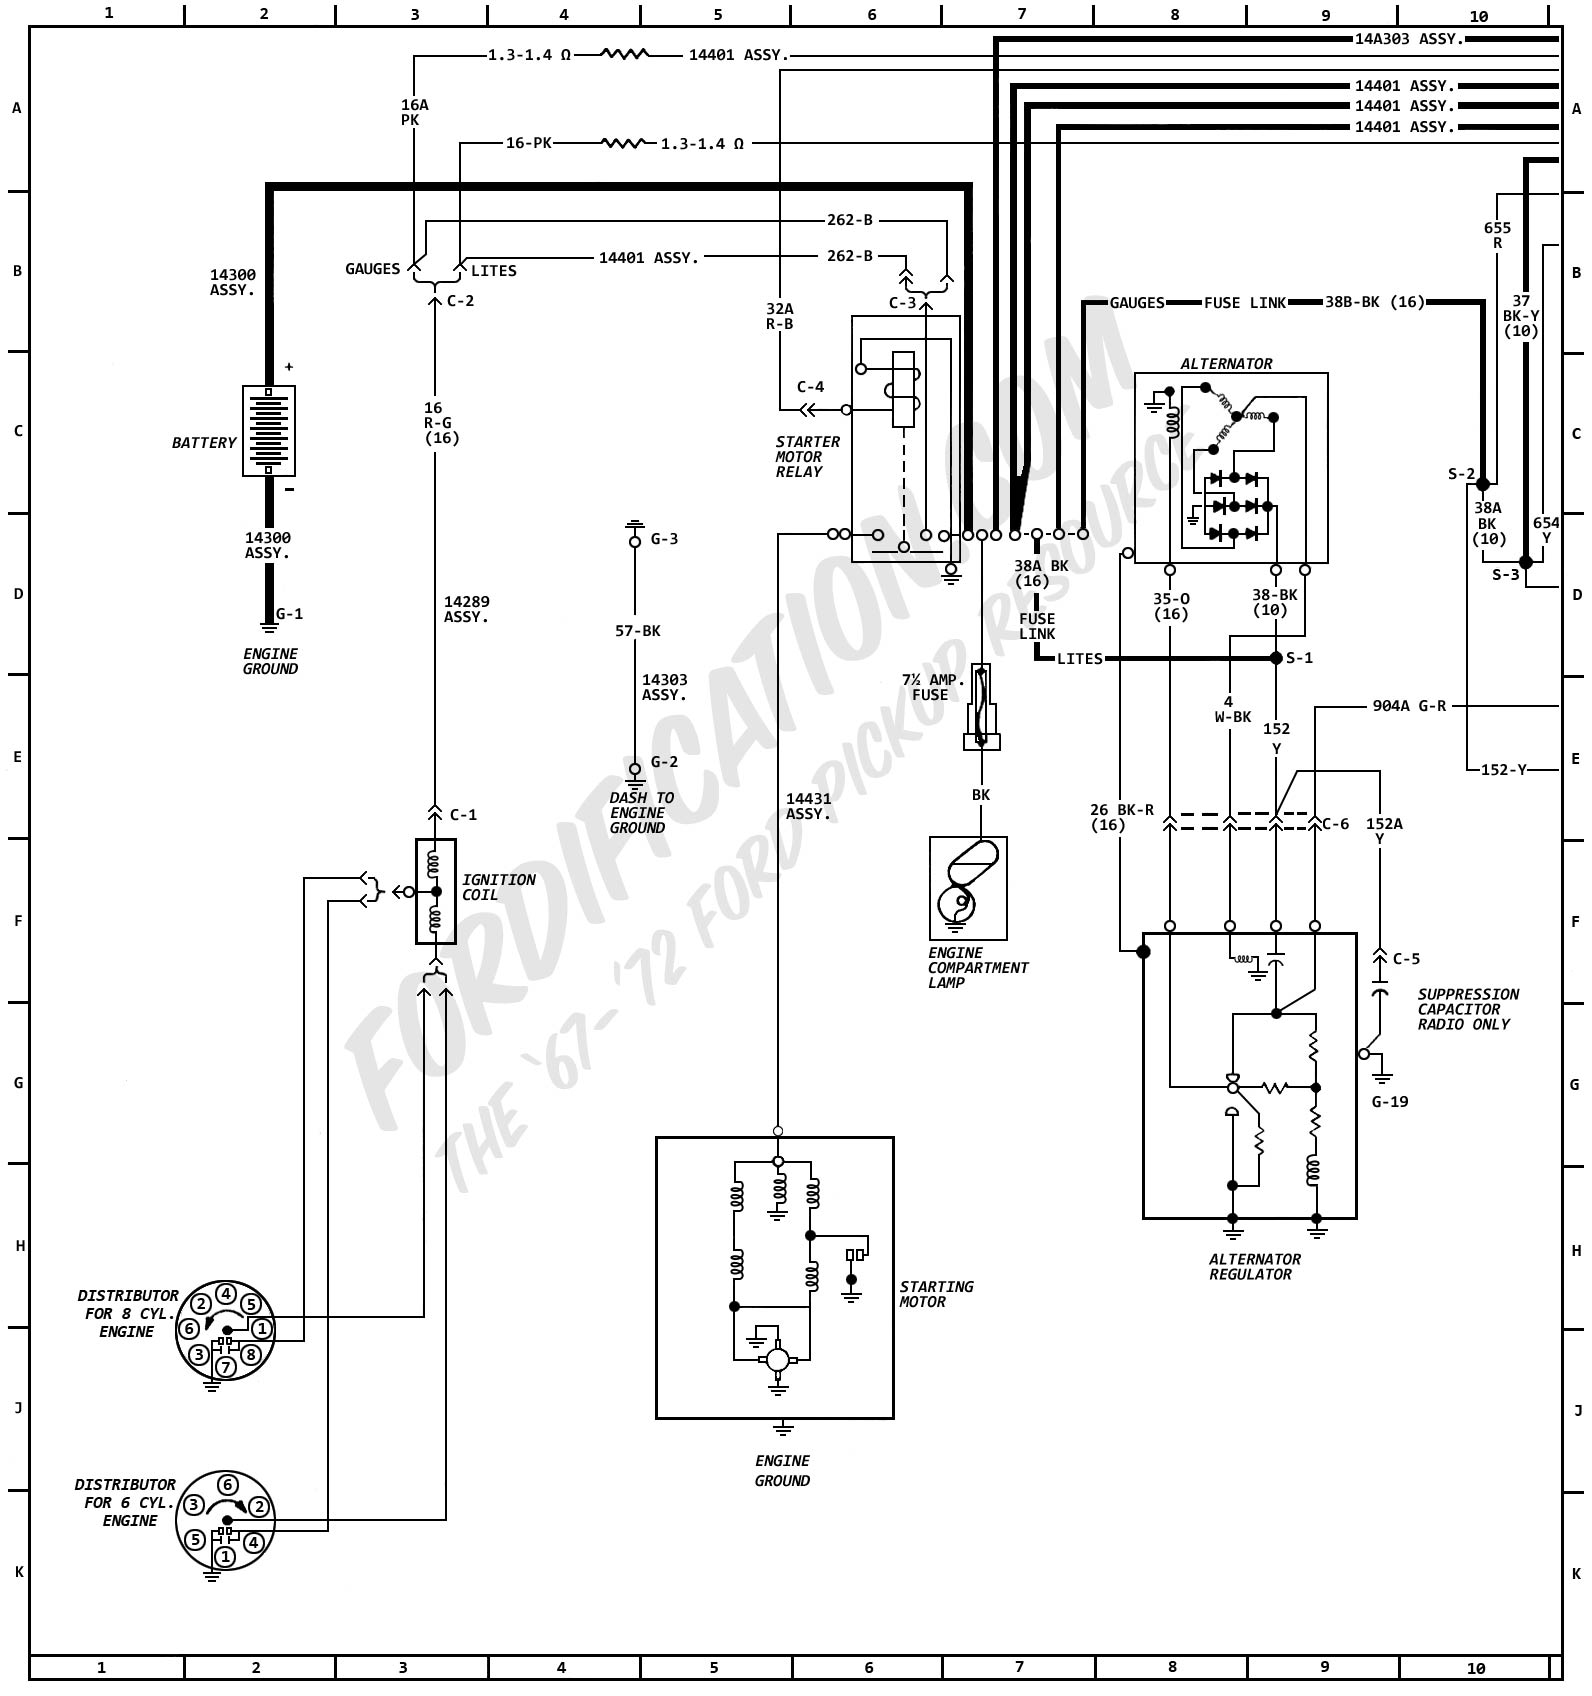 Jeep Ignition Switch Wiring Diagram 1973 Great Design Of 98 Wrangler 1972 Ford F100 Detailed Schematics Rh Jppastryarts Com